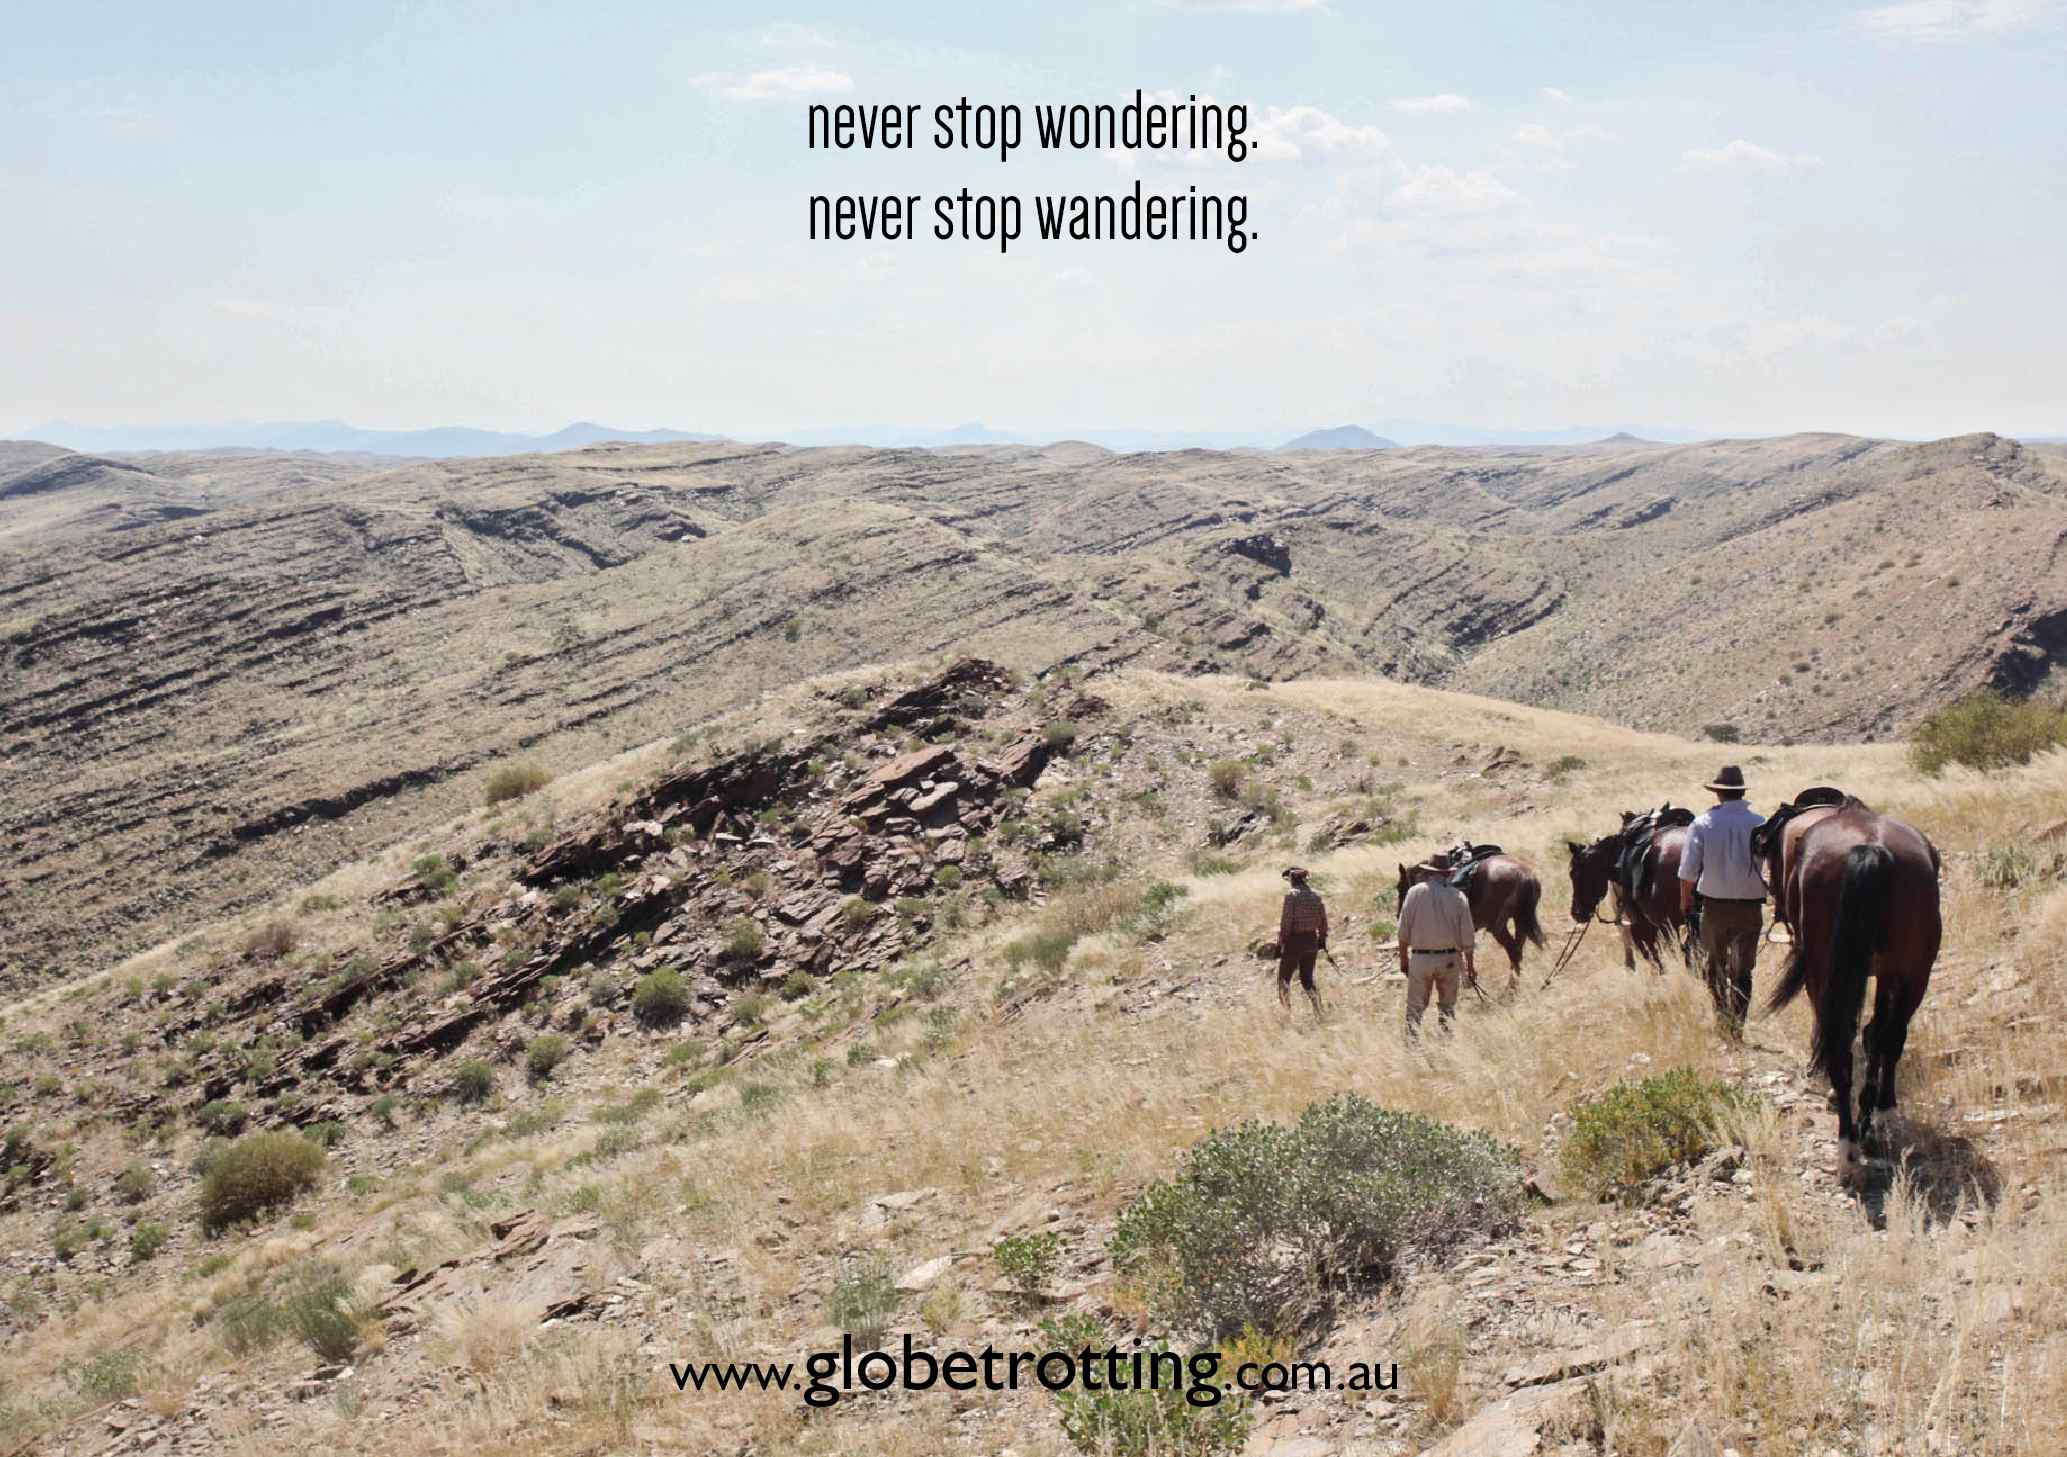 never stop wandering quote